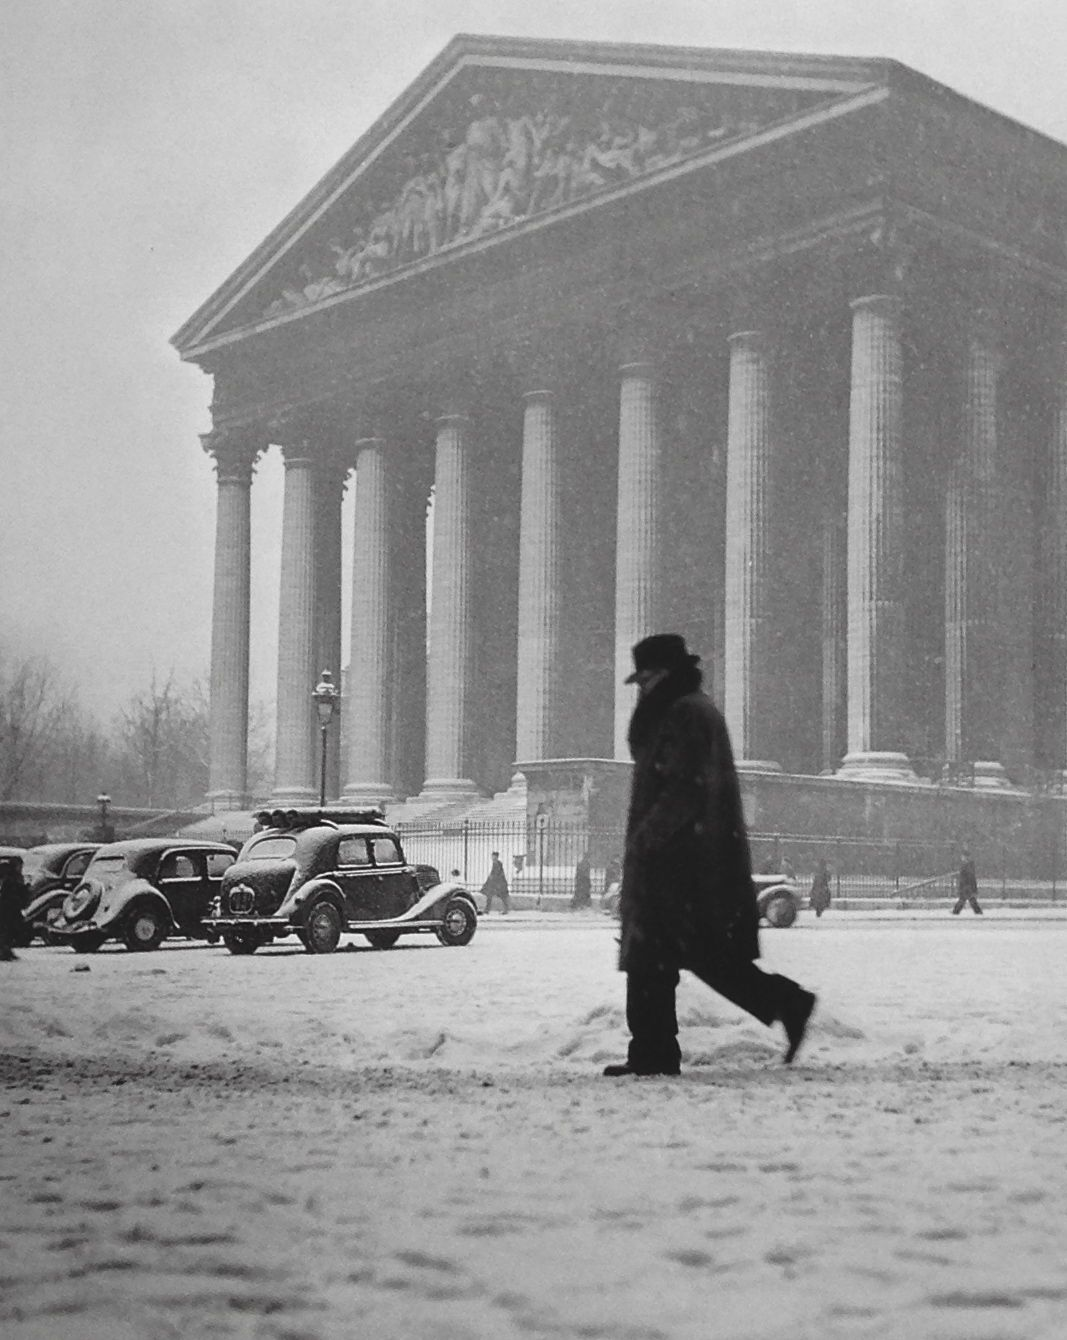 place de la madeleine 1945 paris places i 39 ve been places i might find myself pinterest. Black Bedroom Furniture Sets. Home Design Ideas